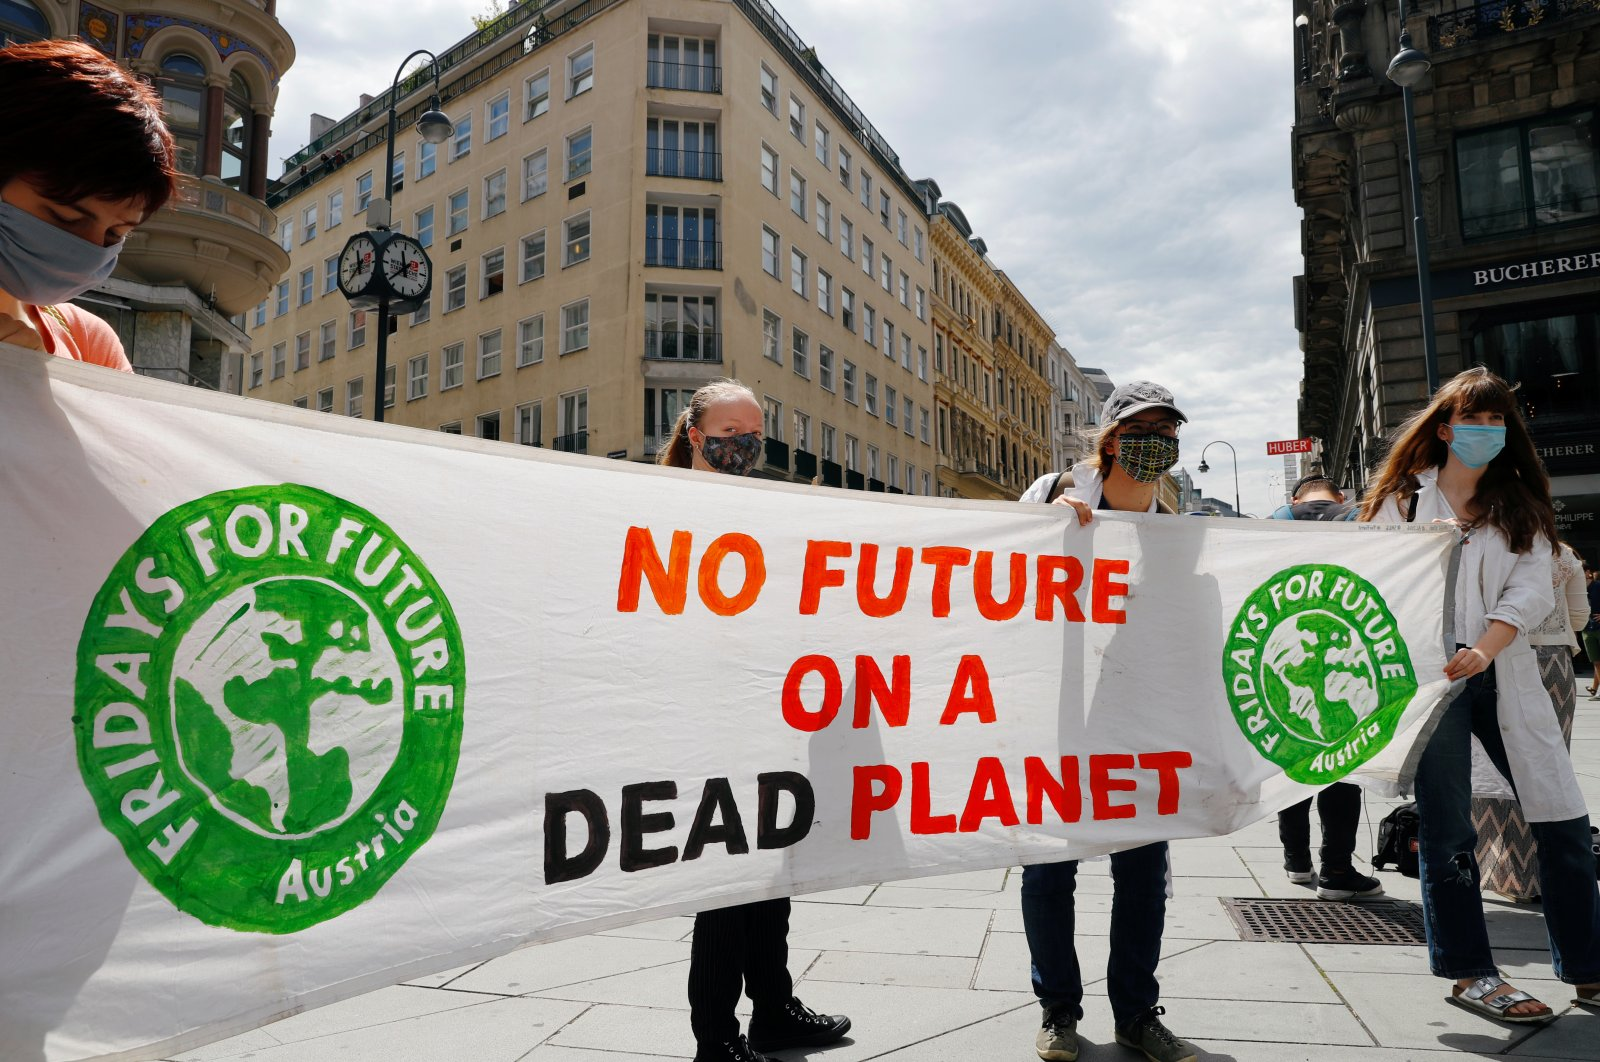 People hold a banner during a protest march to call for action against climate change, as the spread of the coronavirus disease (COVID-19) continues, in Vienna, Austria, June 26, 2020.(Reuters Photo)